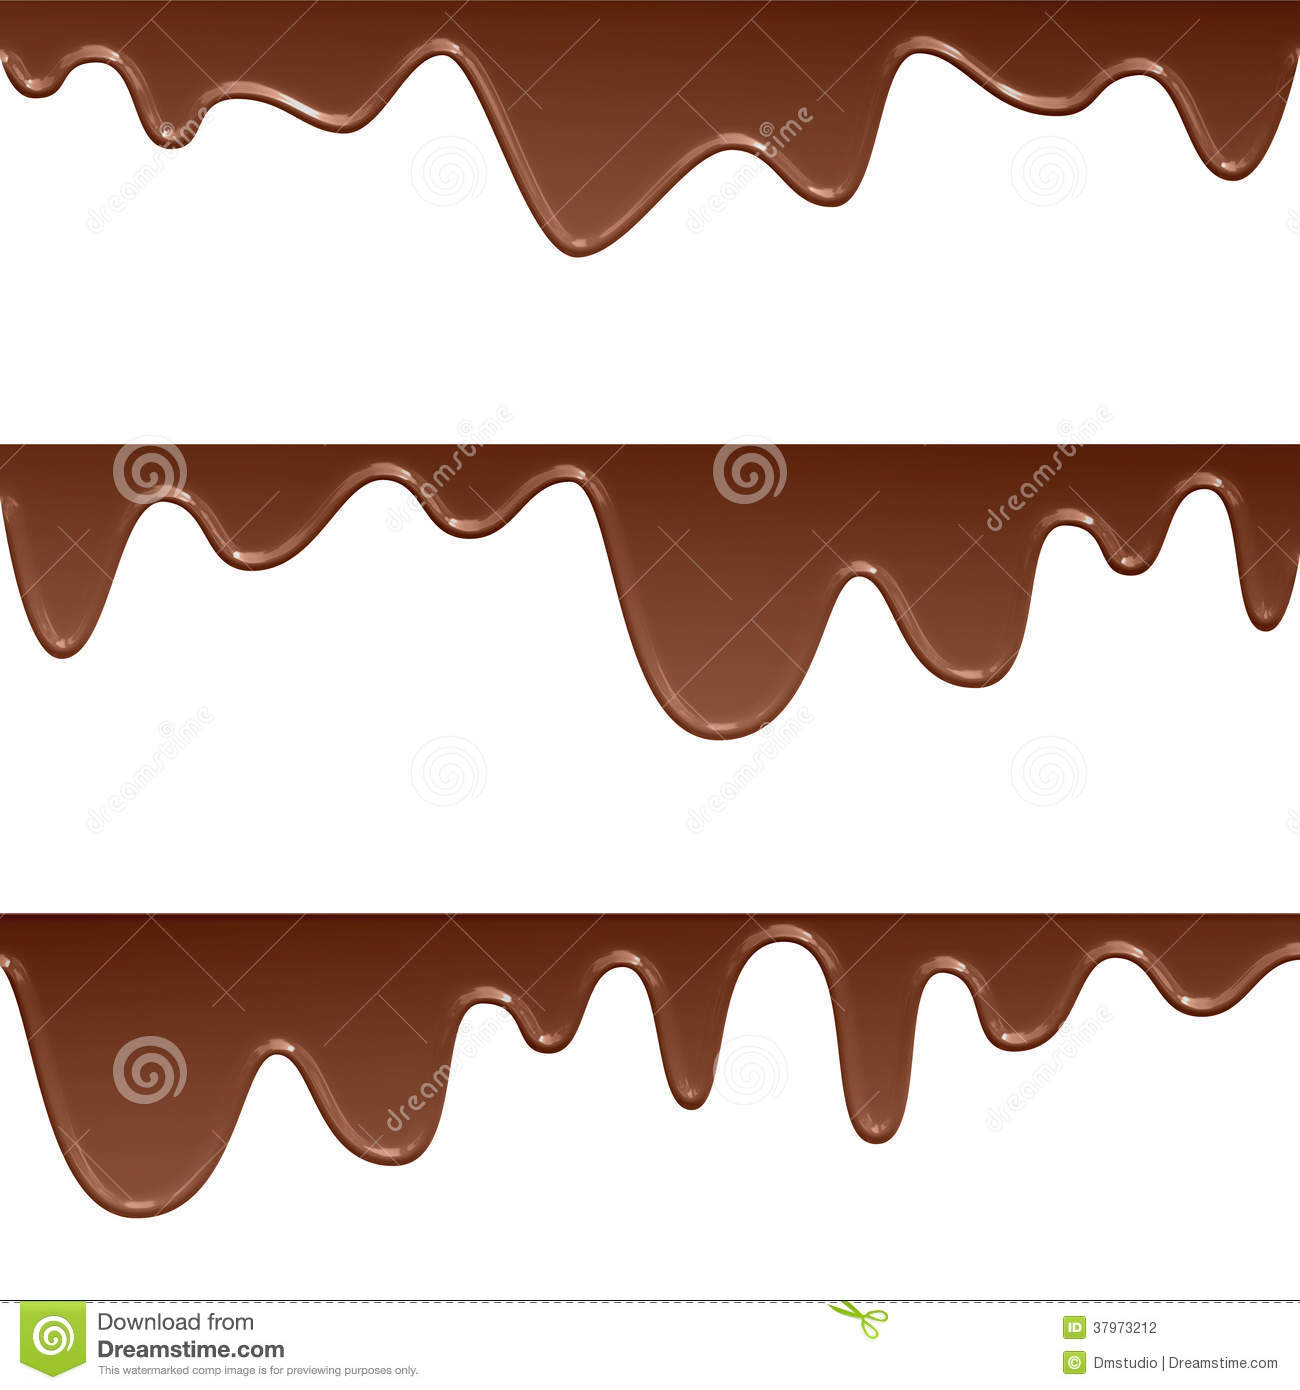 Flowing Chocolate Drops Stock Images - Image: 37973094